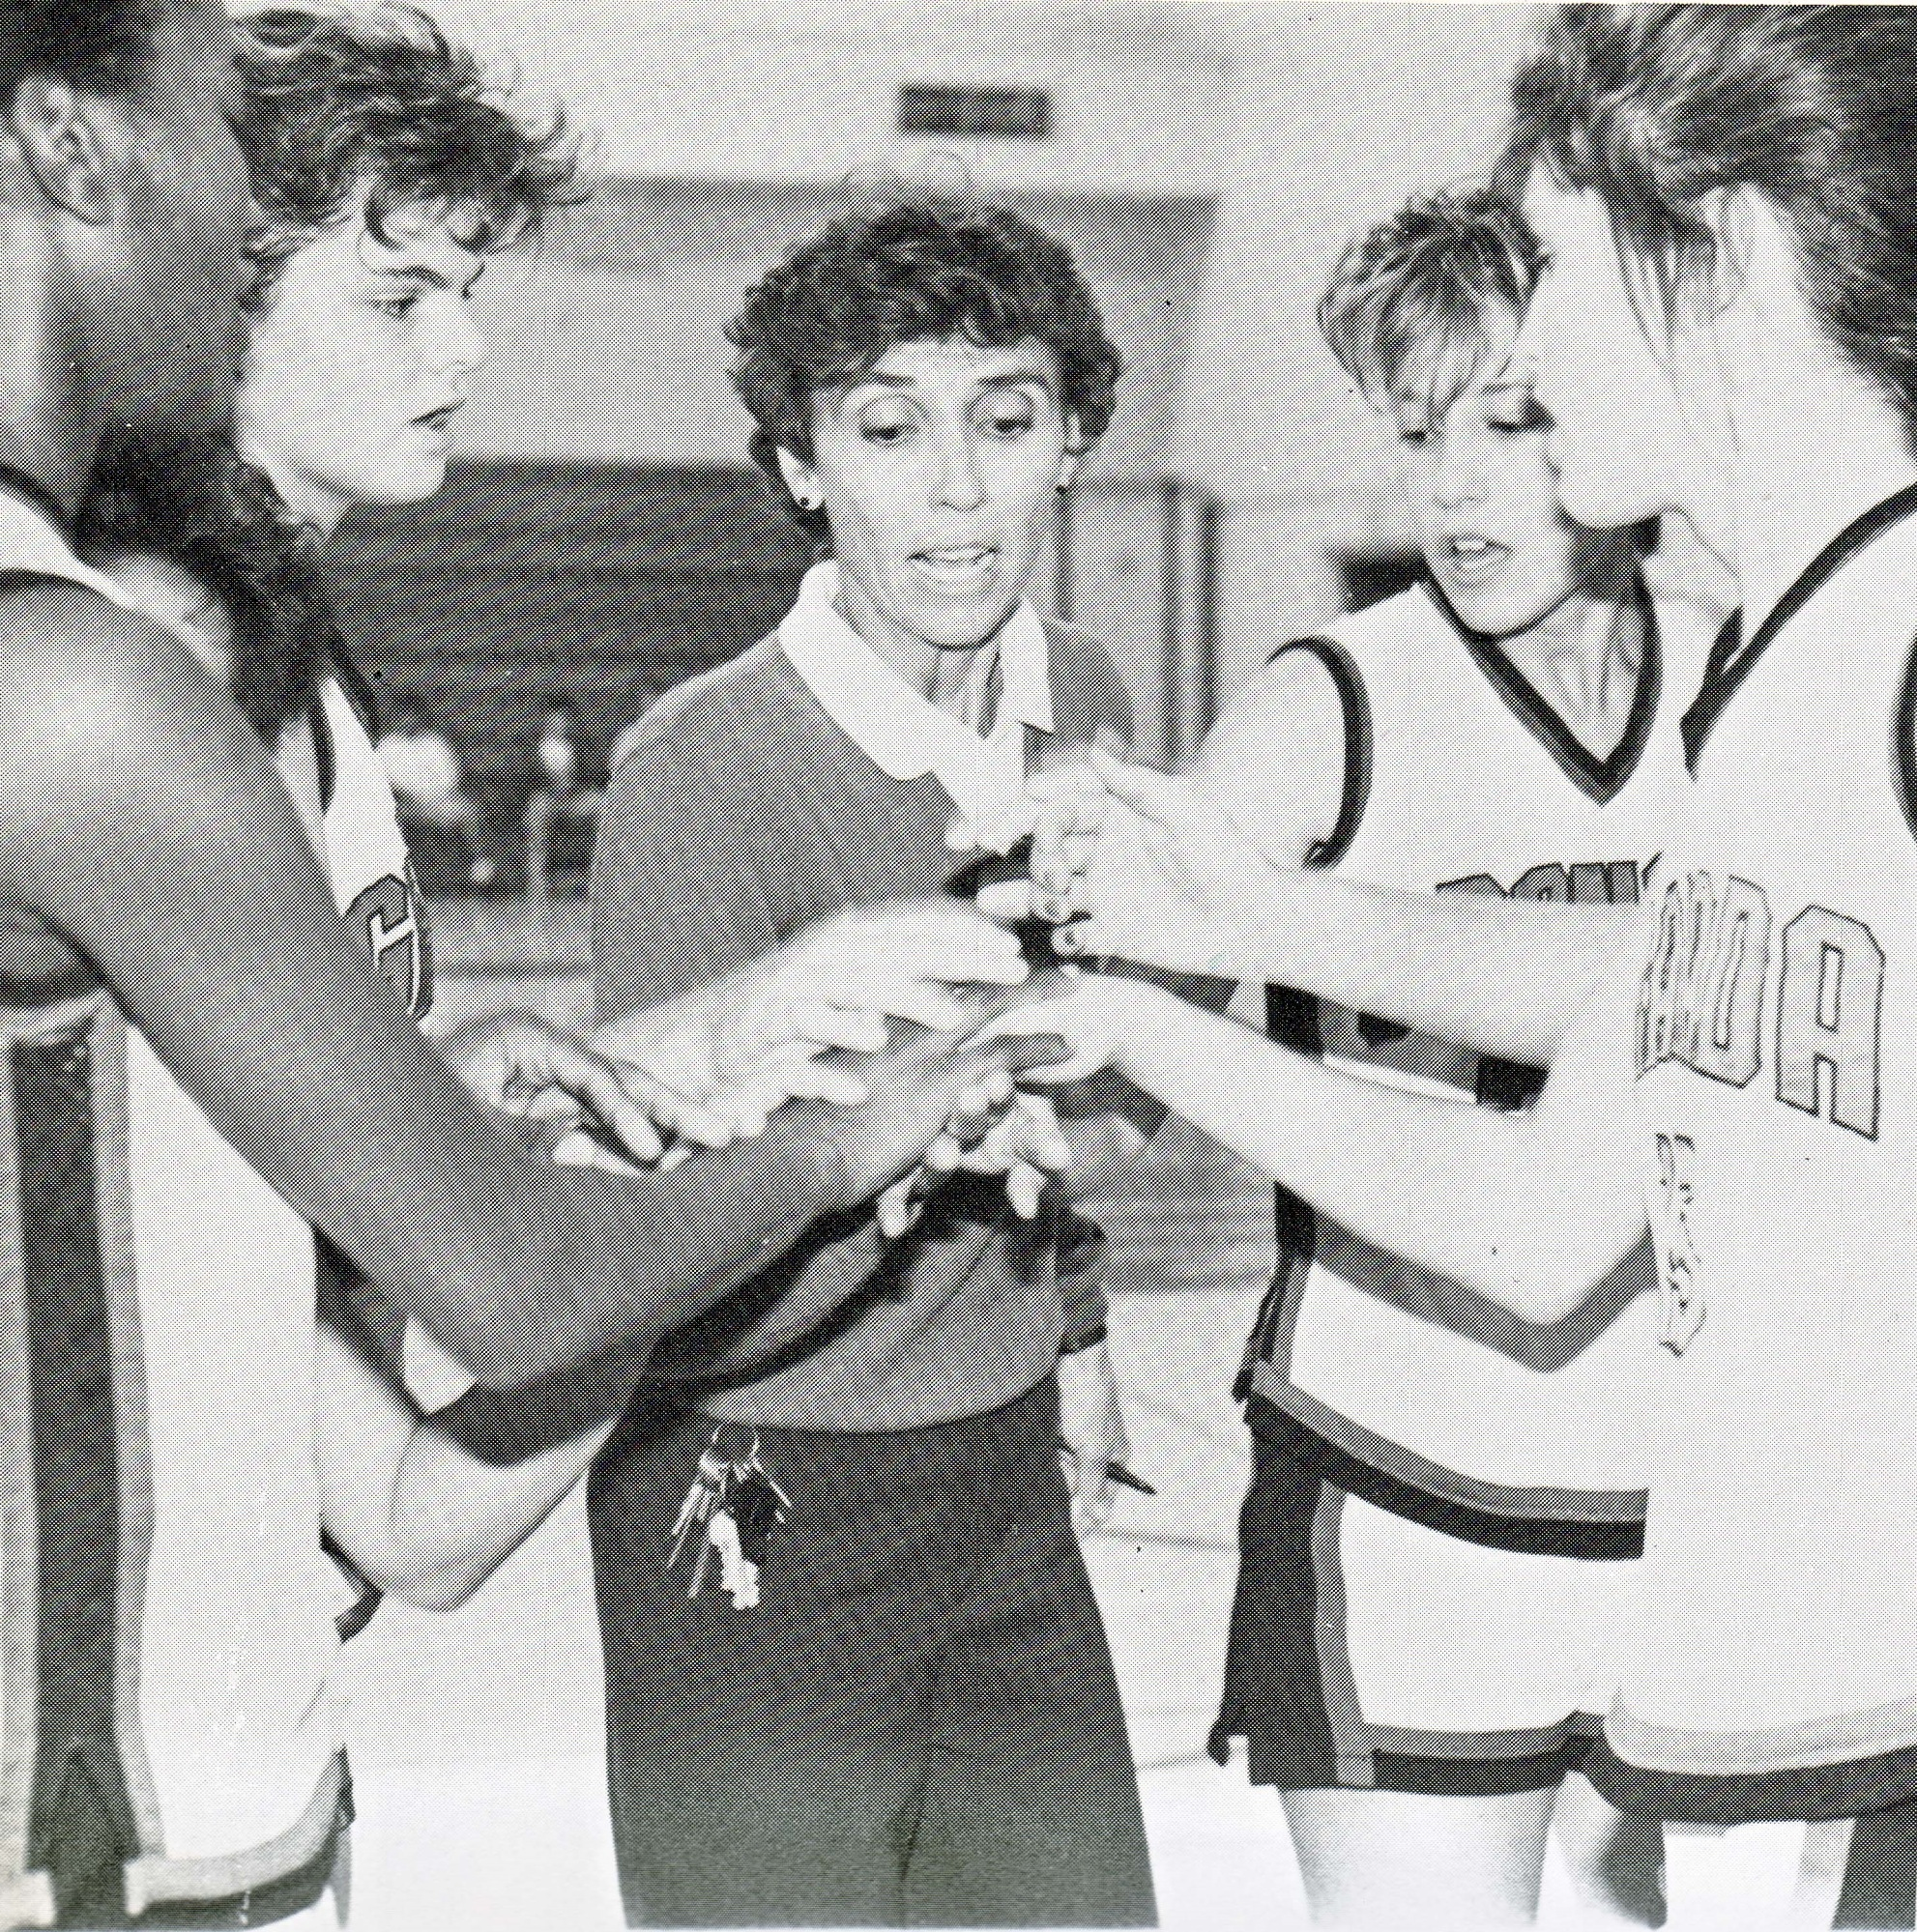 Gunny coaching the girls' basketball team at Granada in 1988.